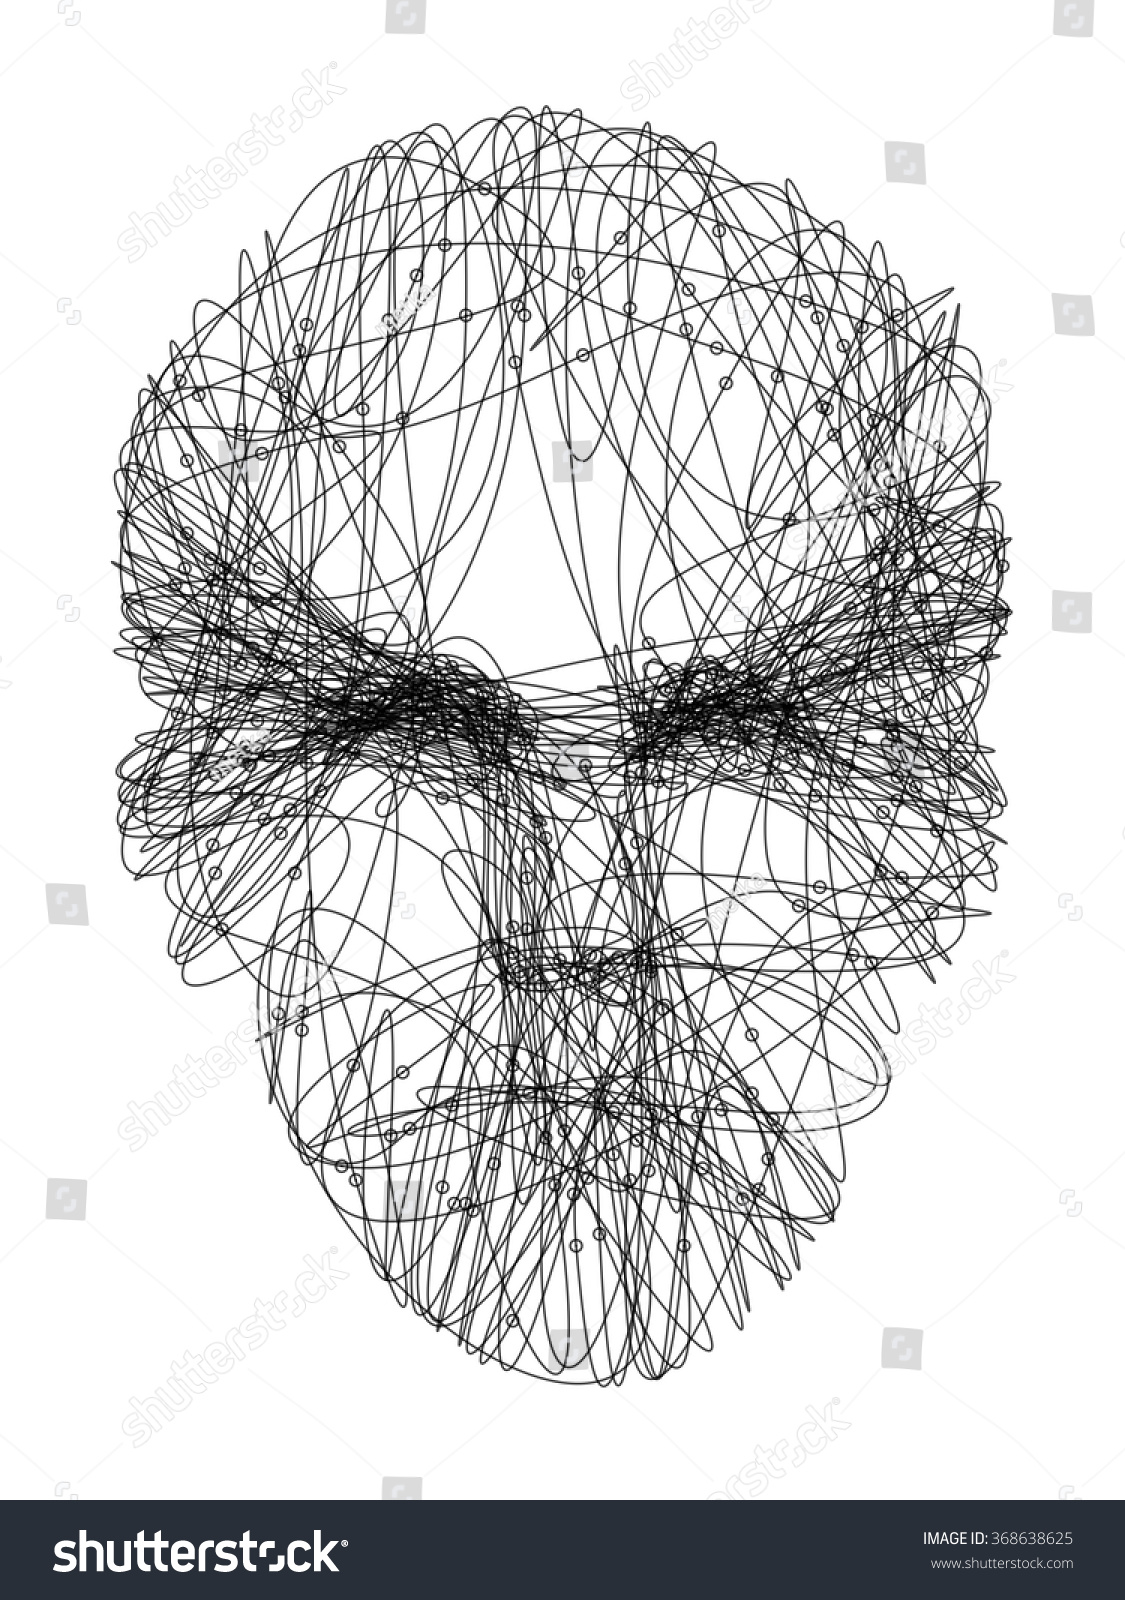 Man S Face Line Drawing : Line drawing representing young mans face stock vector